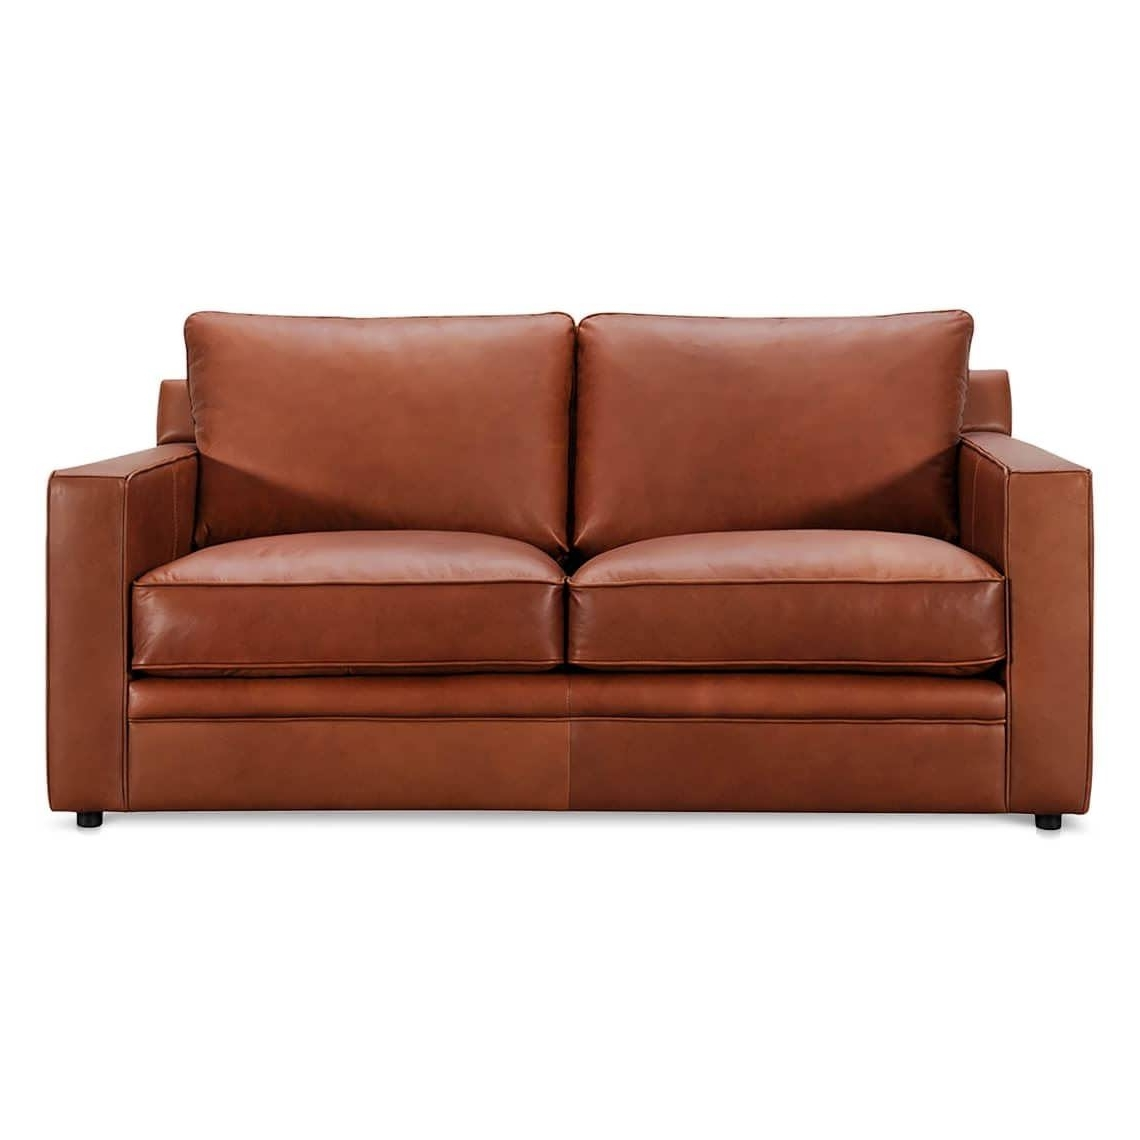 Leather Couches With Chaise Lounge With Regard To Recent Sofa : Black Leather Sectional Small Chaise Sofa Cheap Sectional (View 8 of 15)